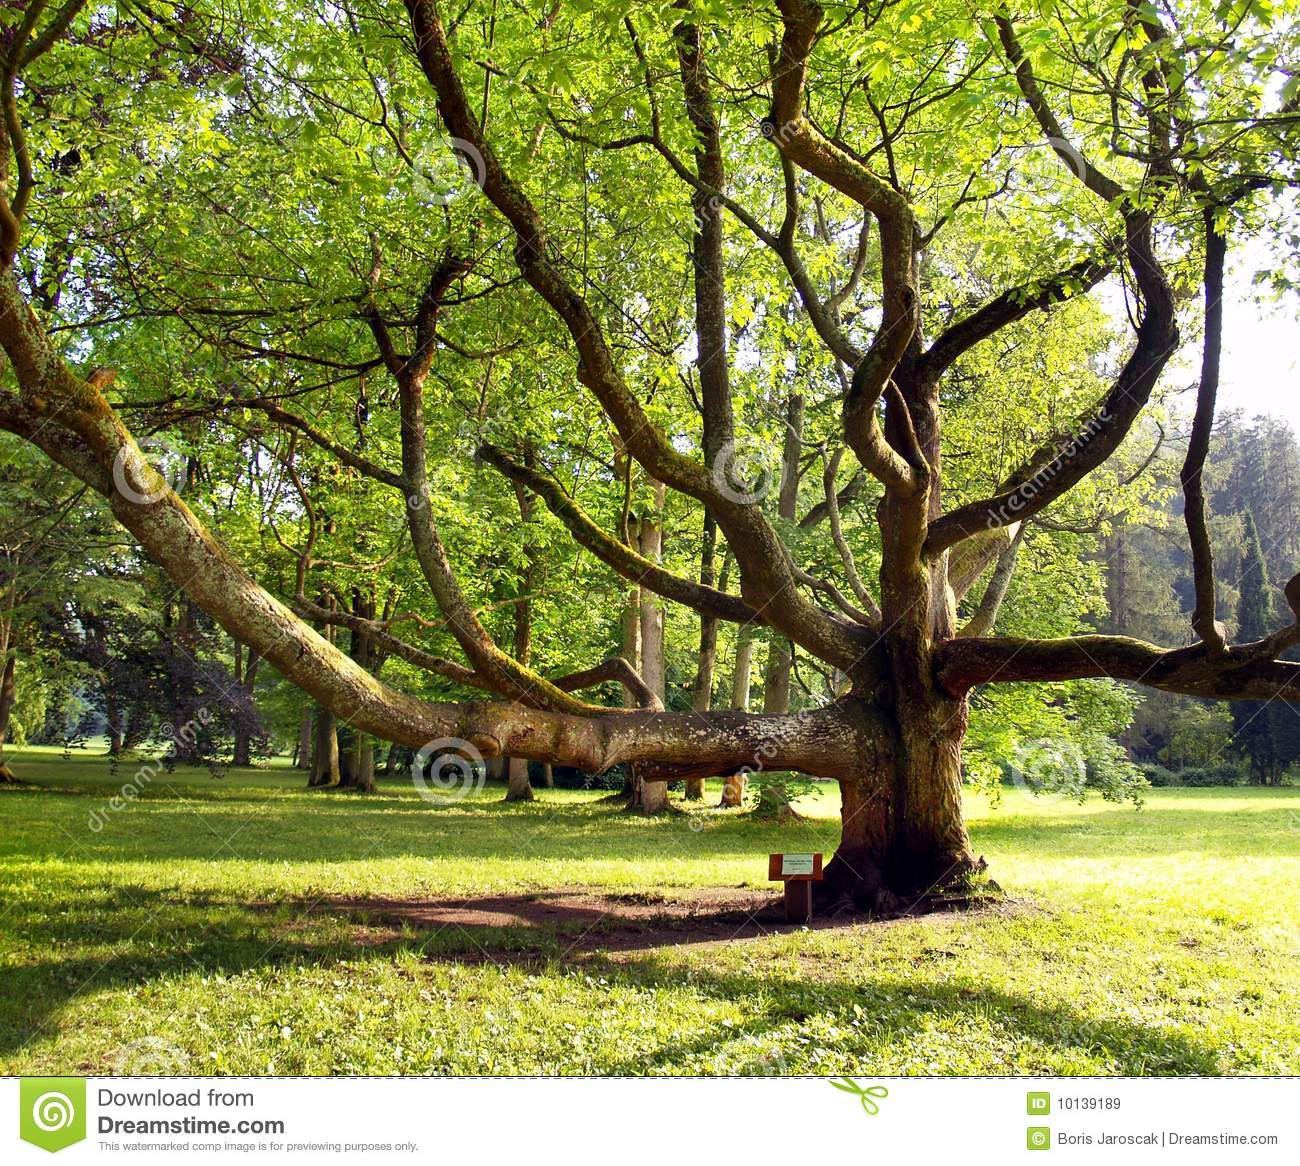 Very old tree in the park